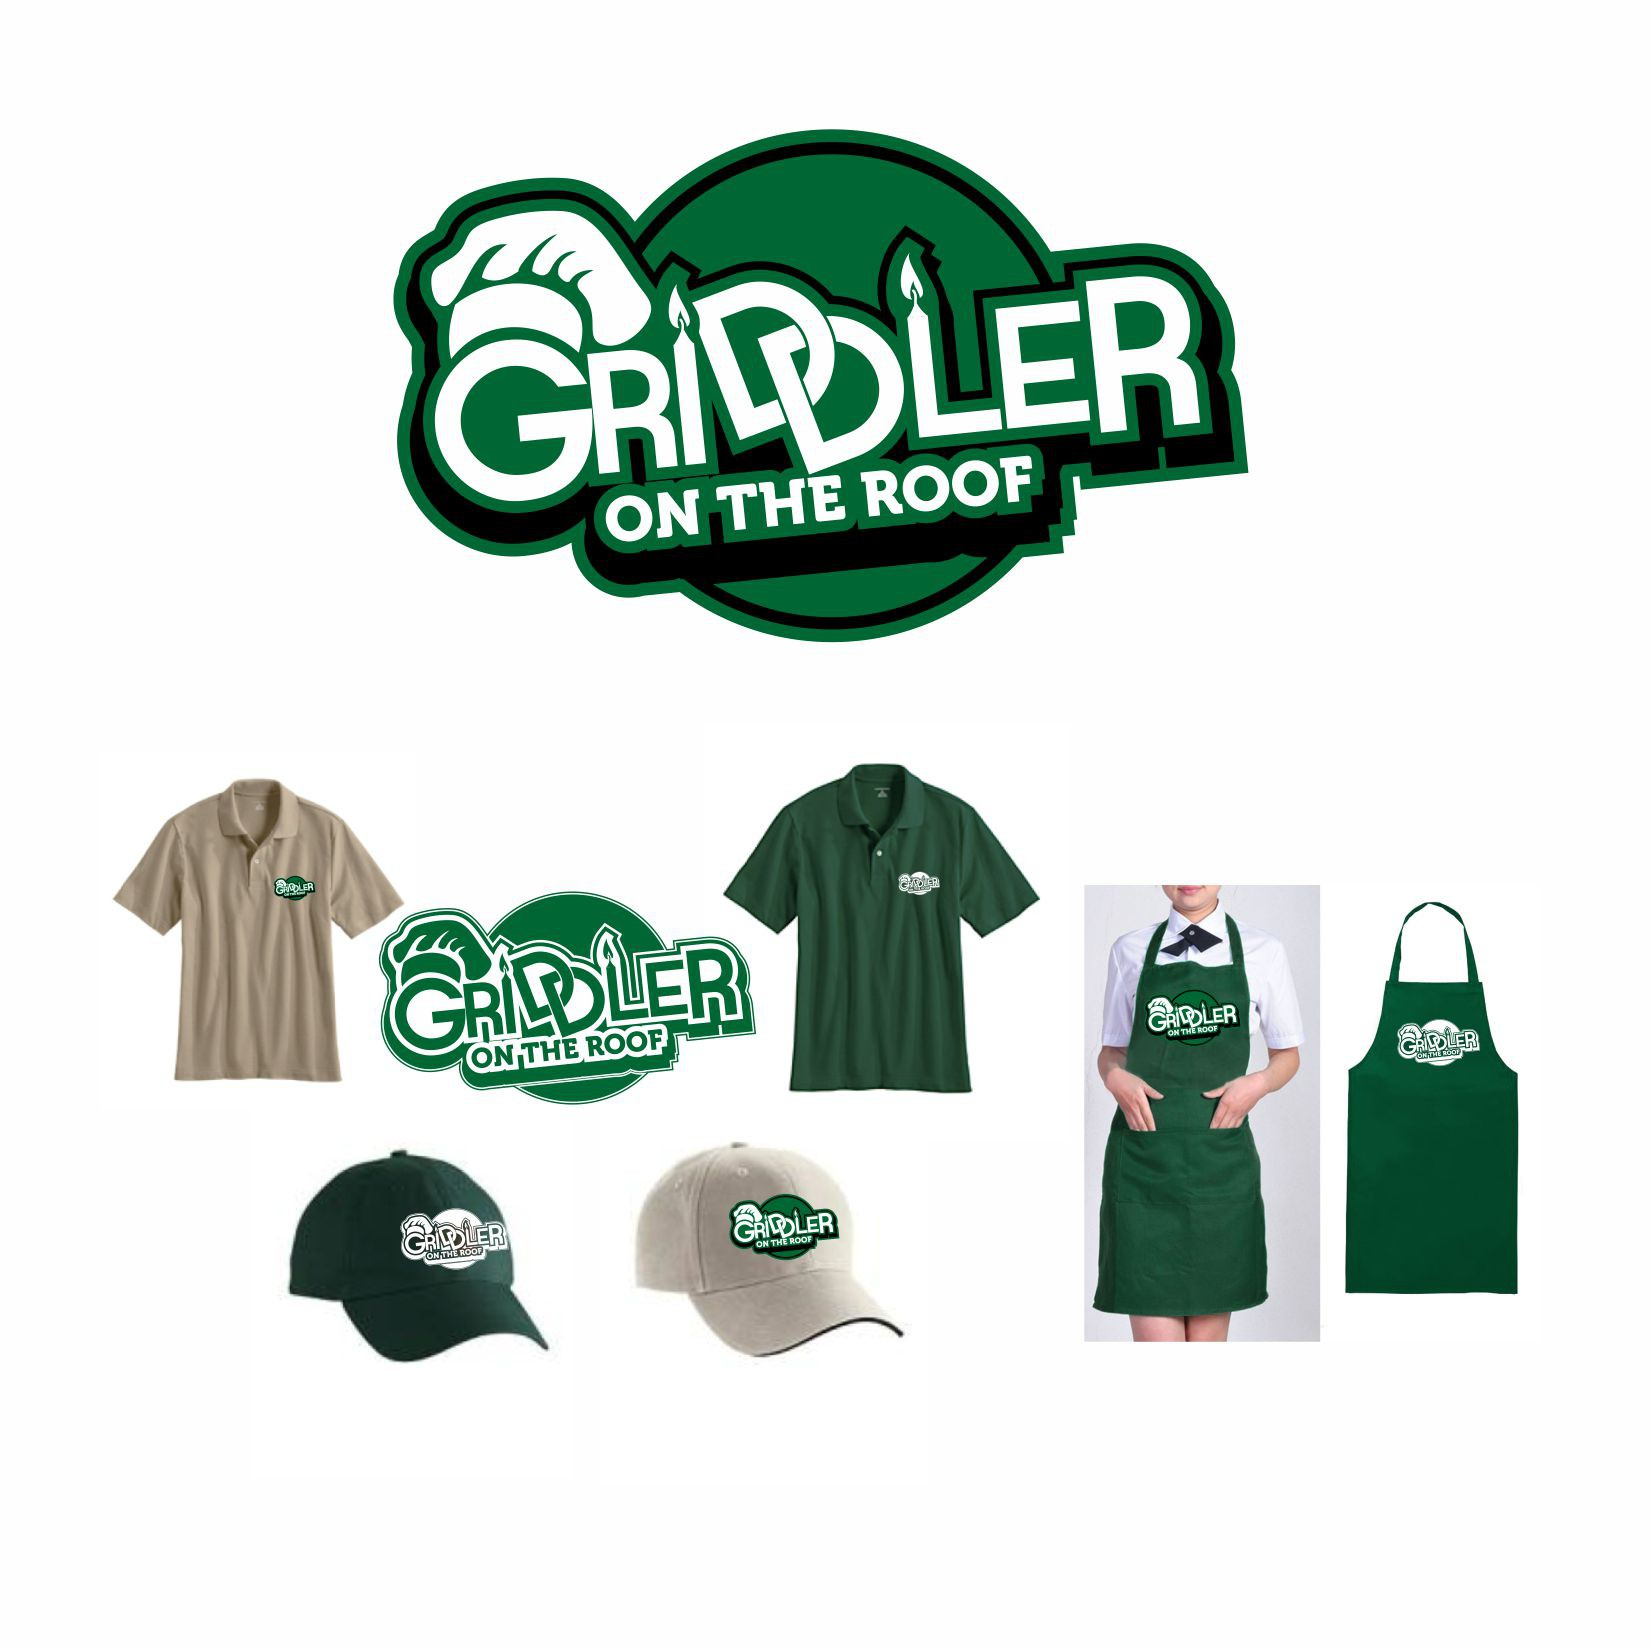 Create a fun logo for Griddler on the Roof food truck.